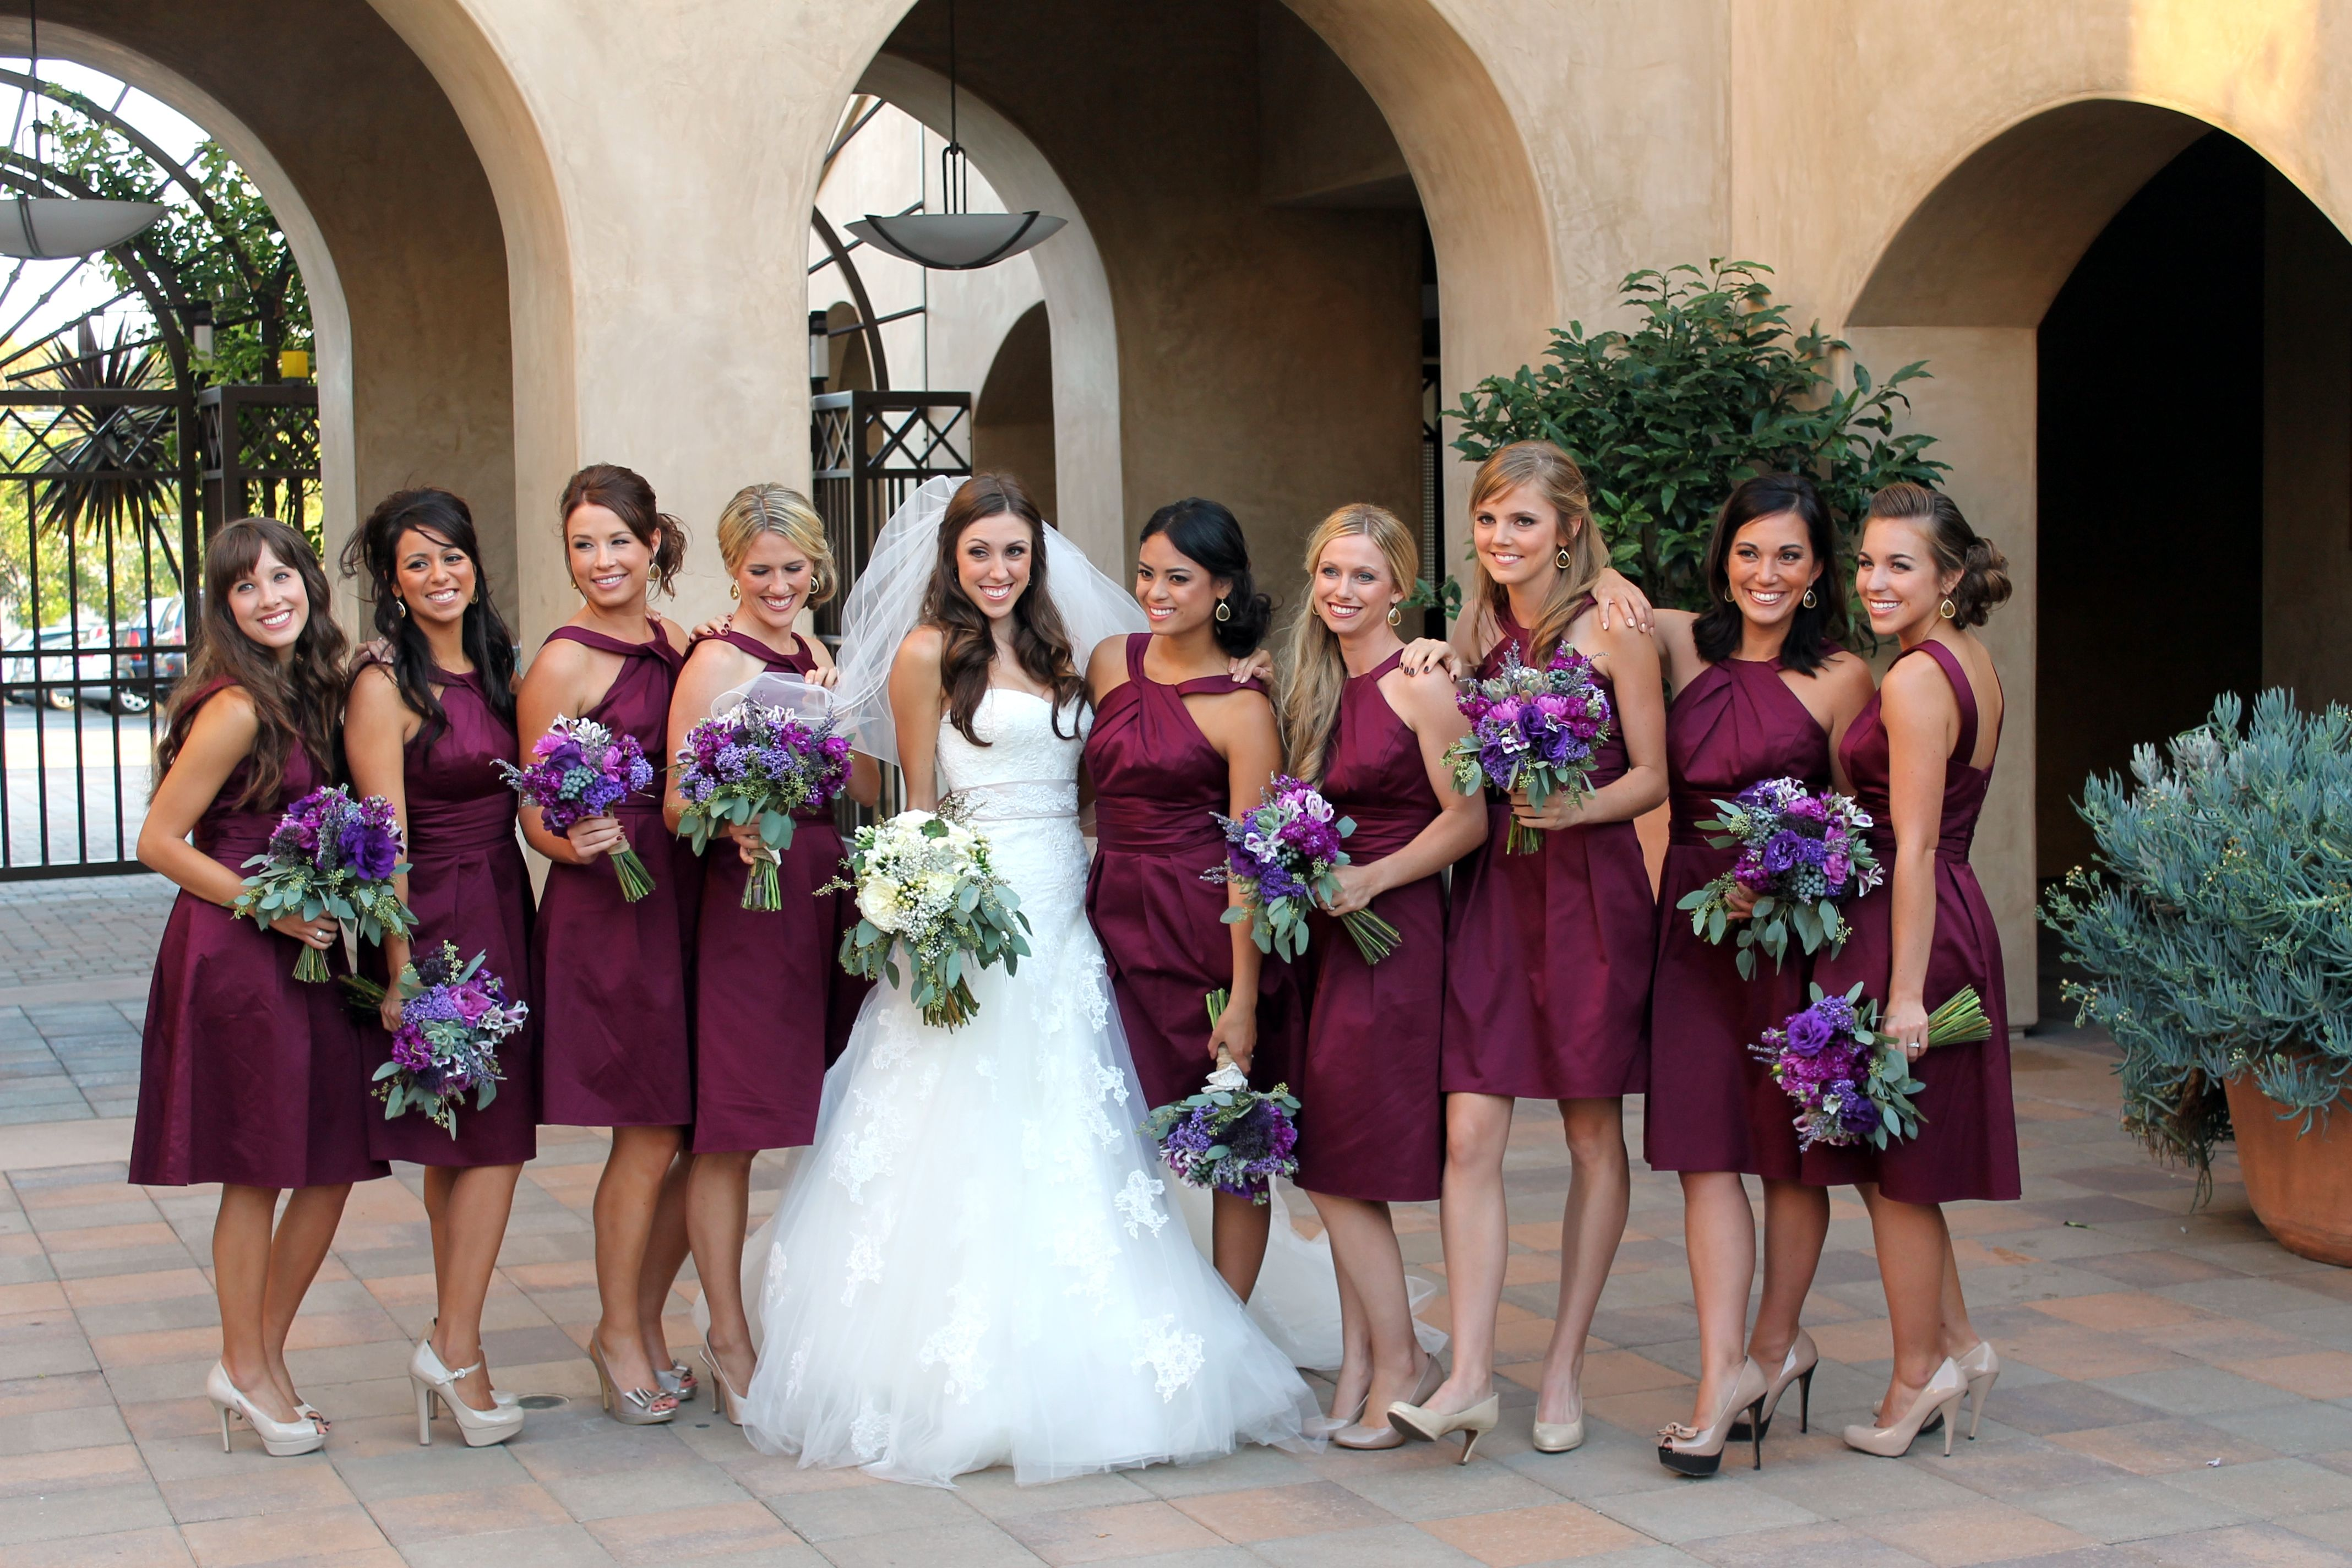 Wine colored bridesmaid dresses with purple flowers all things wine colored bridesmaid dresses with purple flowers ombrellifo Choice Image